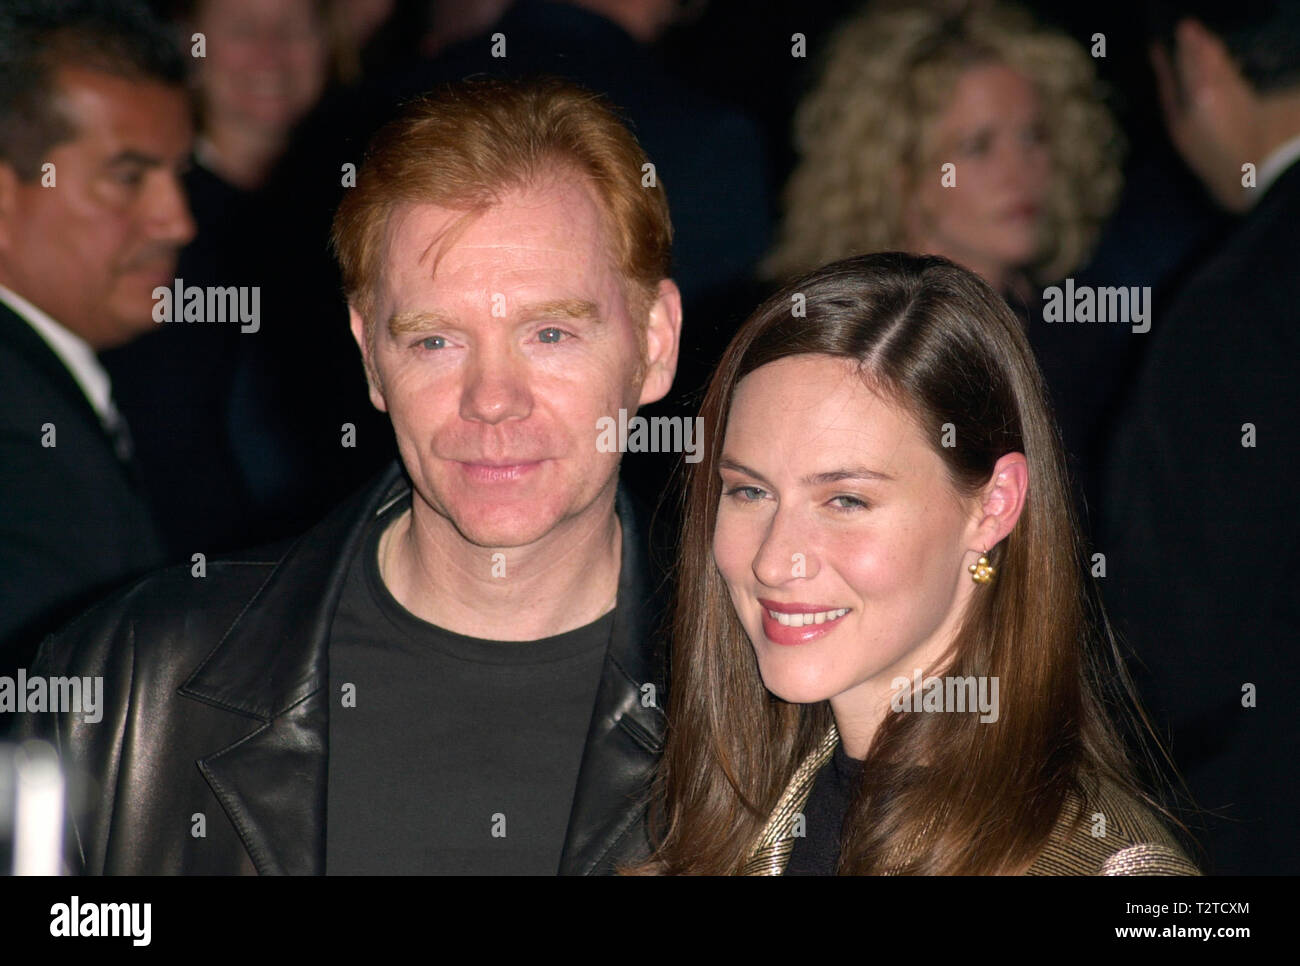 LOS ANGELES, CA. December 04, 2000: Actor DAVID CARUSO & wife MARGARET at the Los Angeles premiere of his new movie Proof of Life. © Paul Smith / Featureflash Stock Photo